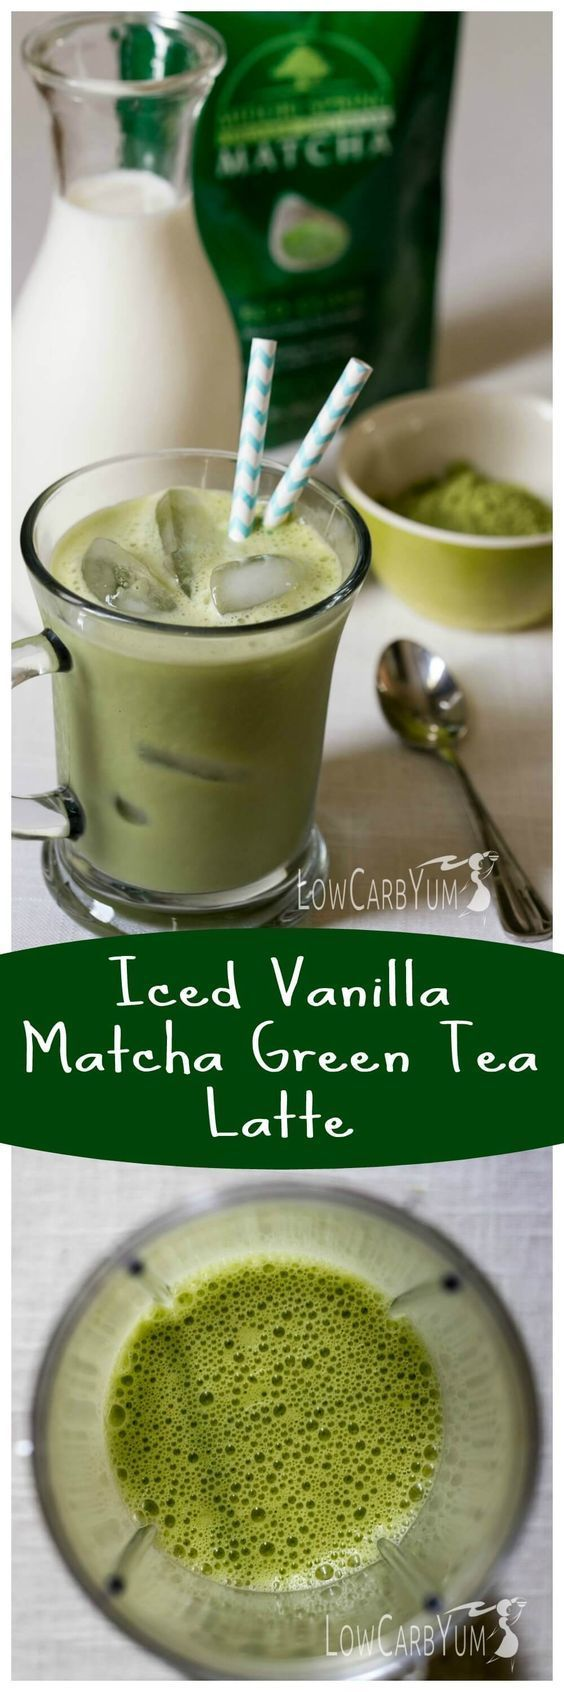 iced vanilla matcha green tea latte. Love these